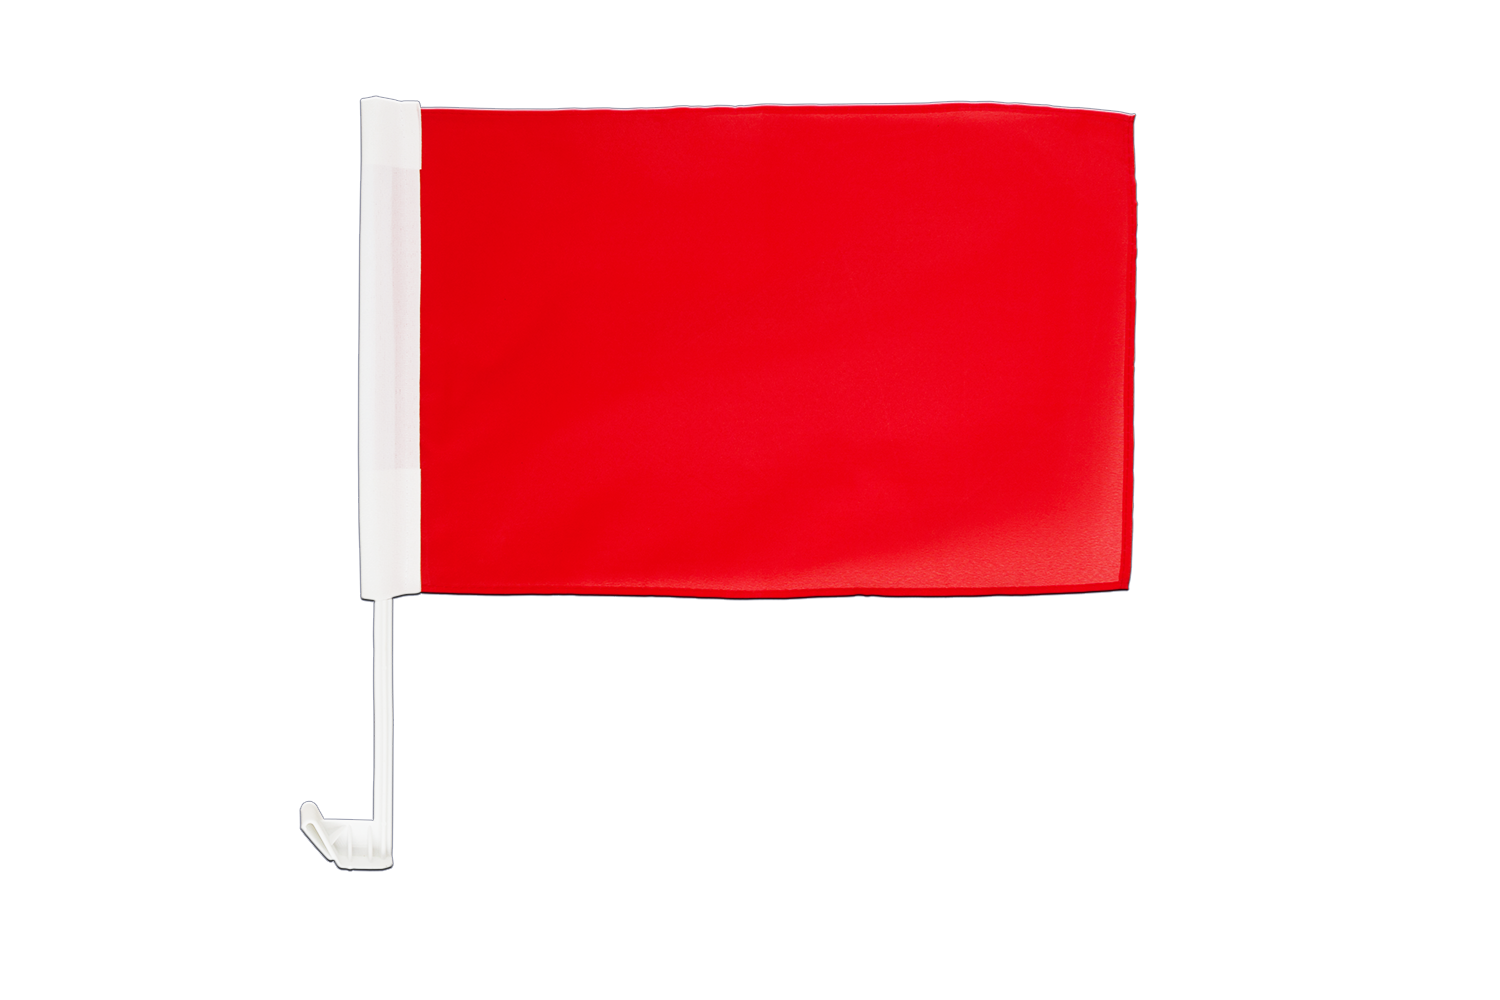 rote Tischflagge 10 x 15 cm MaxFlags/® Einfarbig Rote Flagge